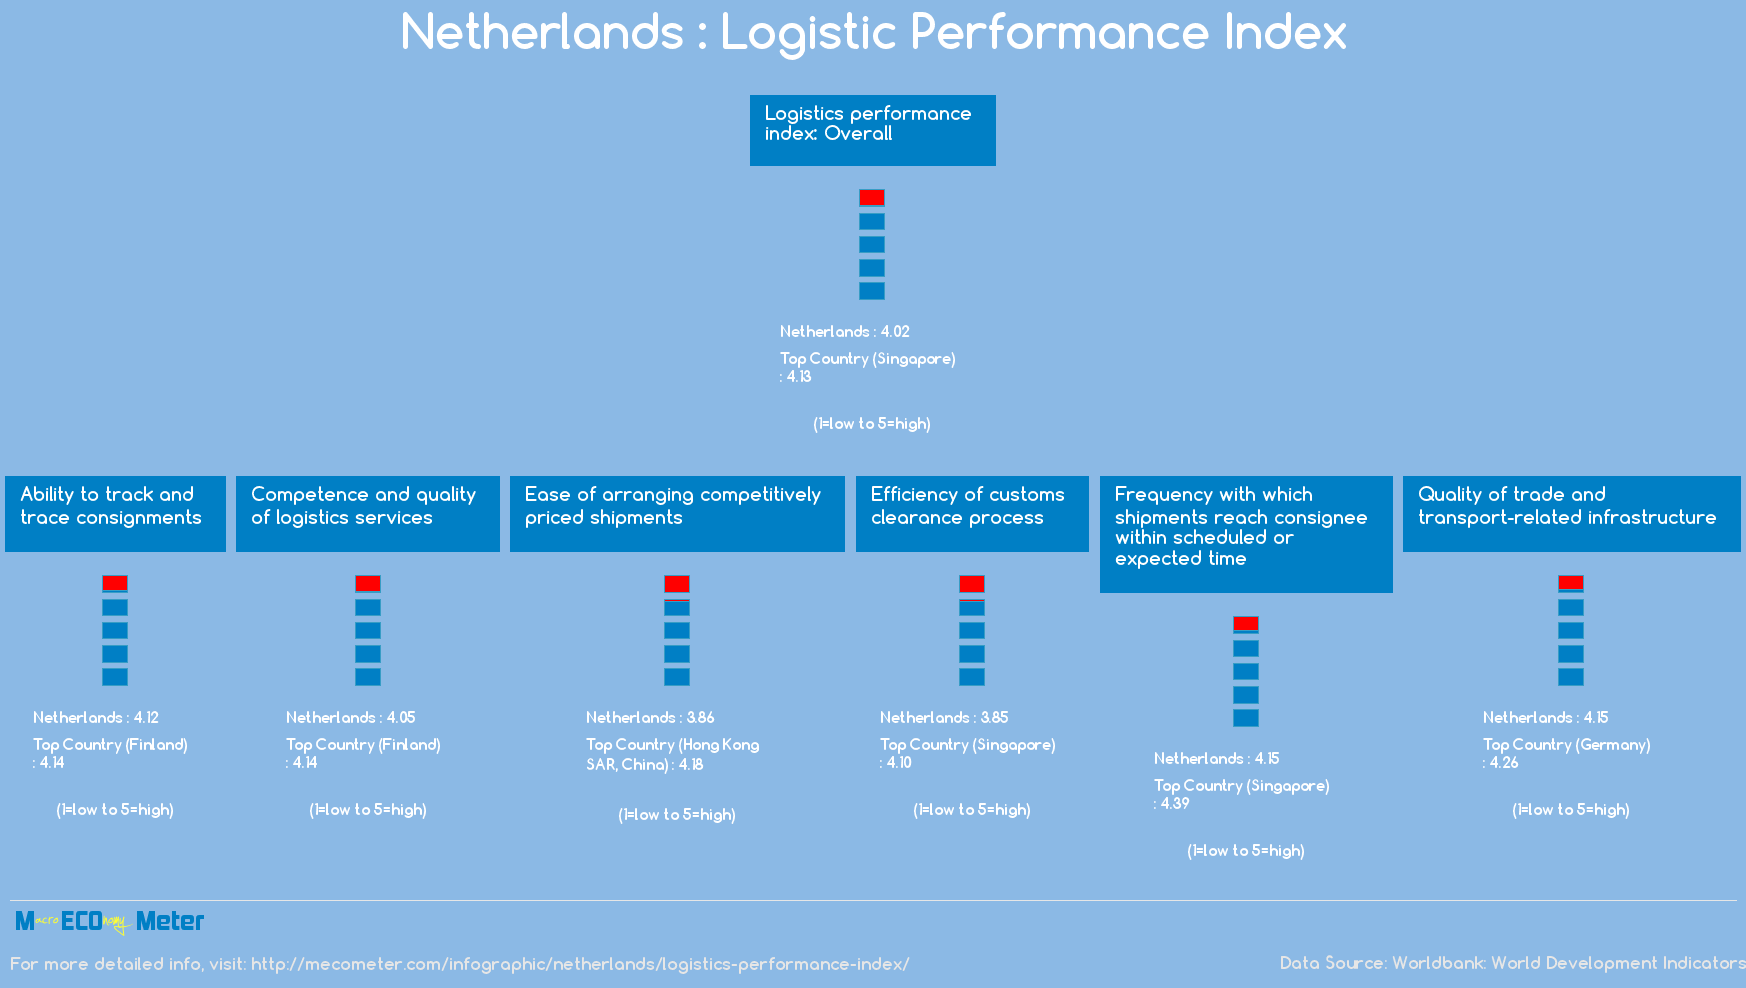 Netherlands : Logistic Performance Index